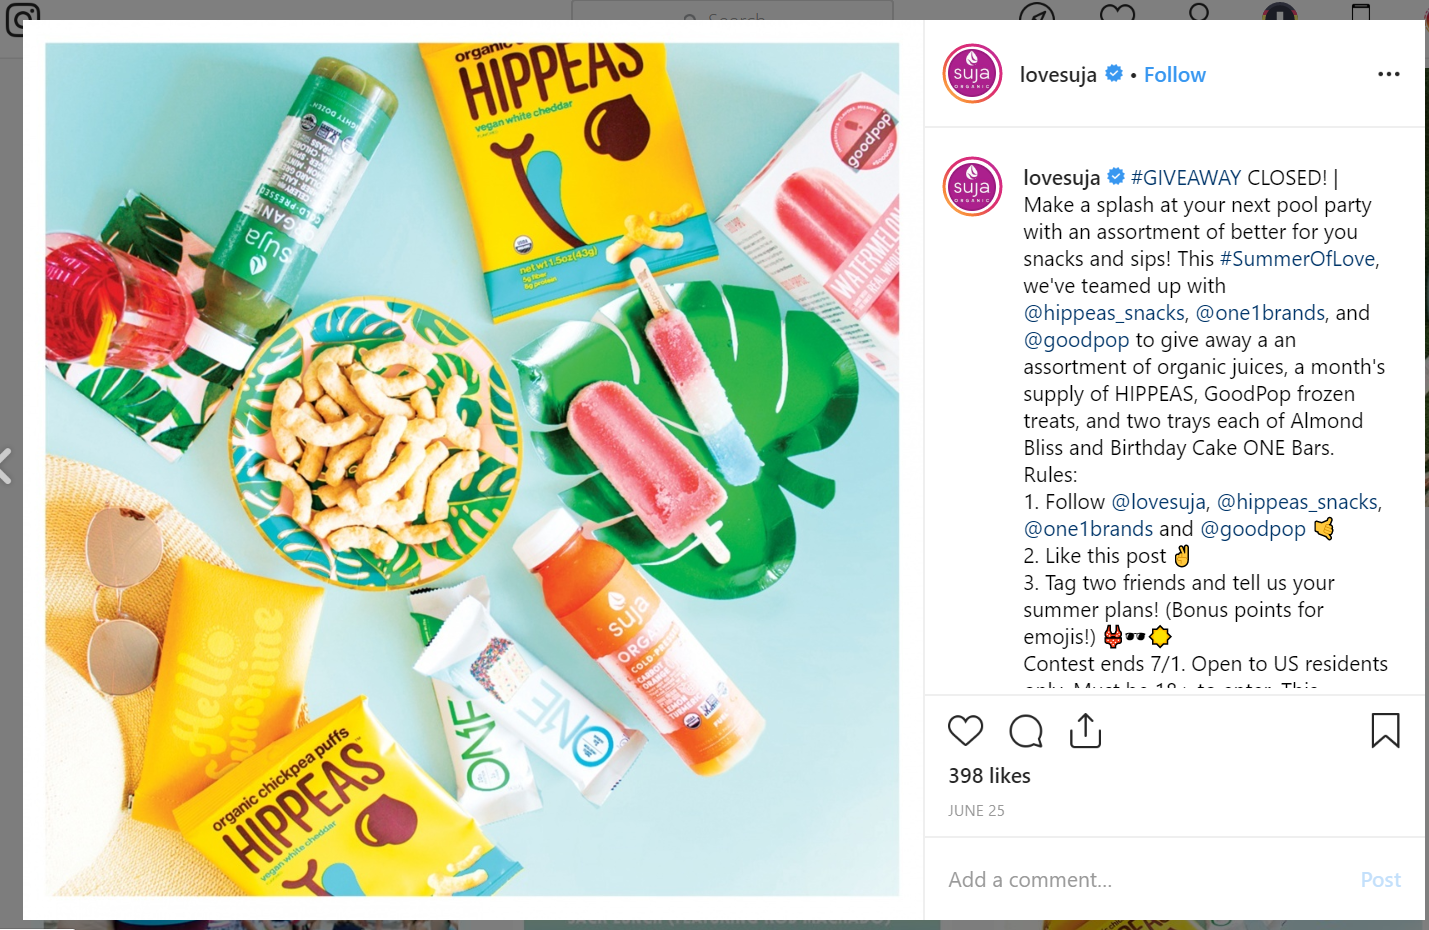 15 Tips to Get Instagram Followers for Your Business - Social Media